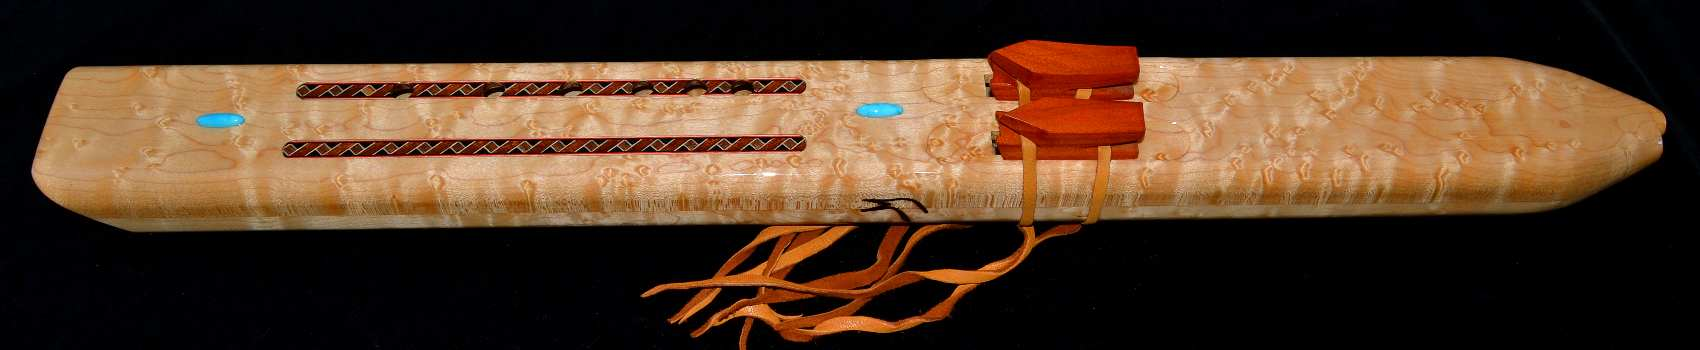 Nativem American Flutes